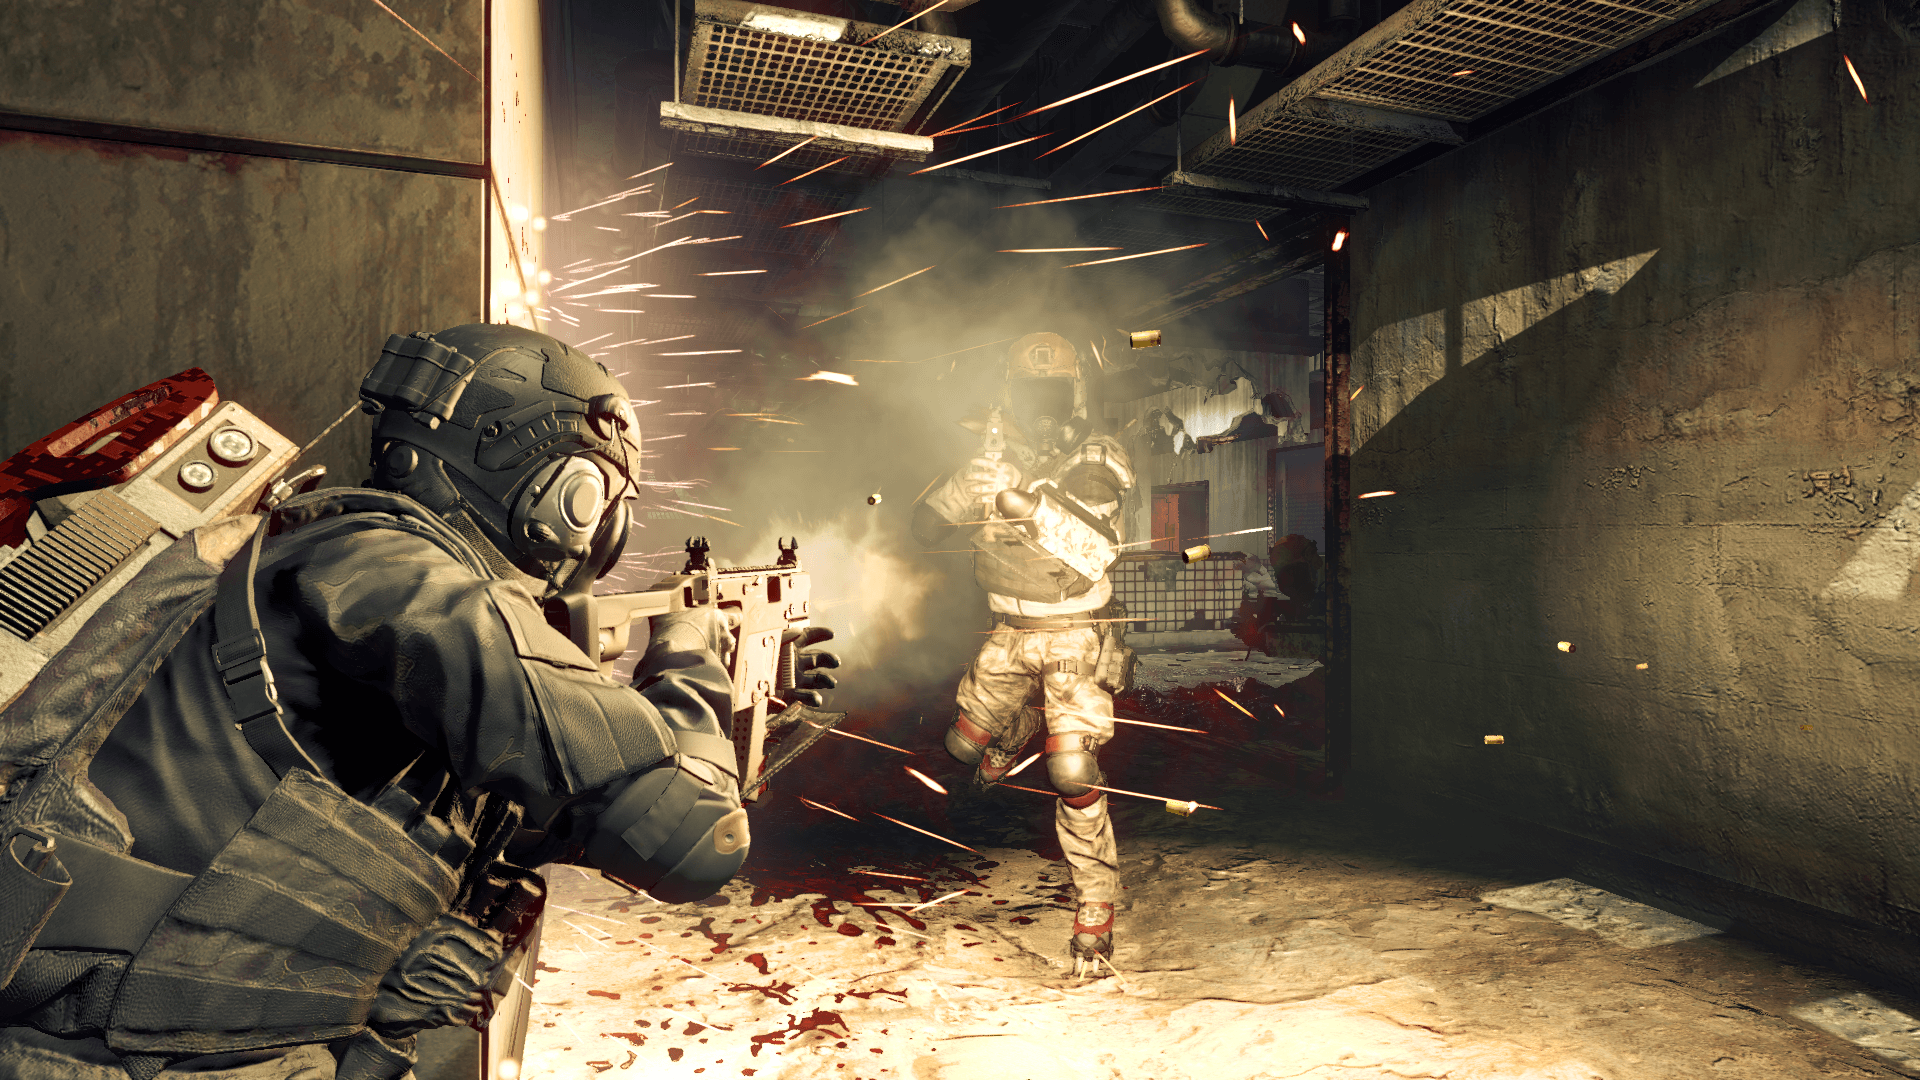 Resident Evil Competitive Shooter Umbrella Corps Announced For PS4 UNILAD Analog Cover Shooting 14422430973